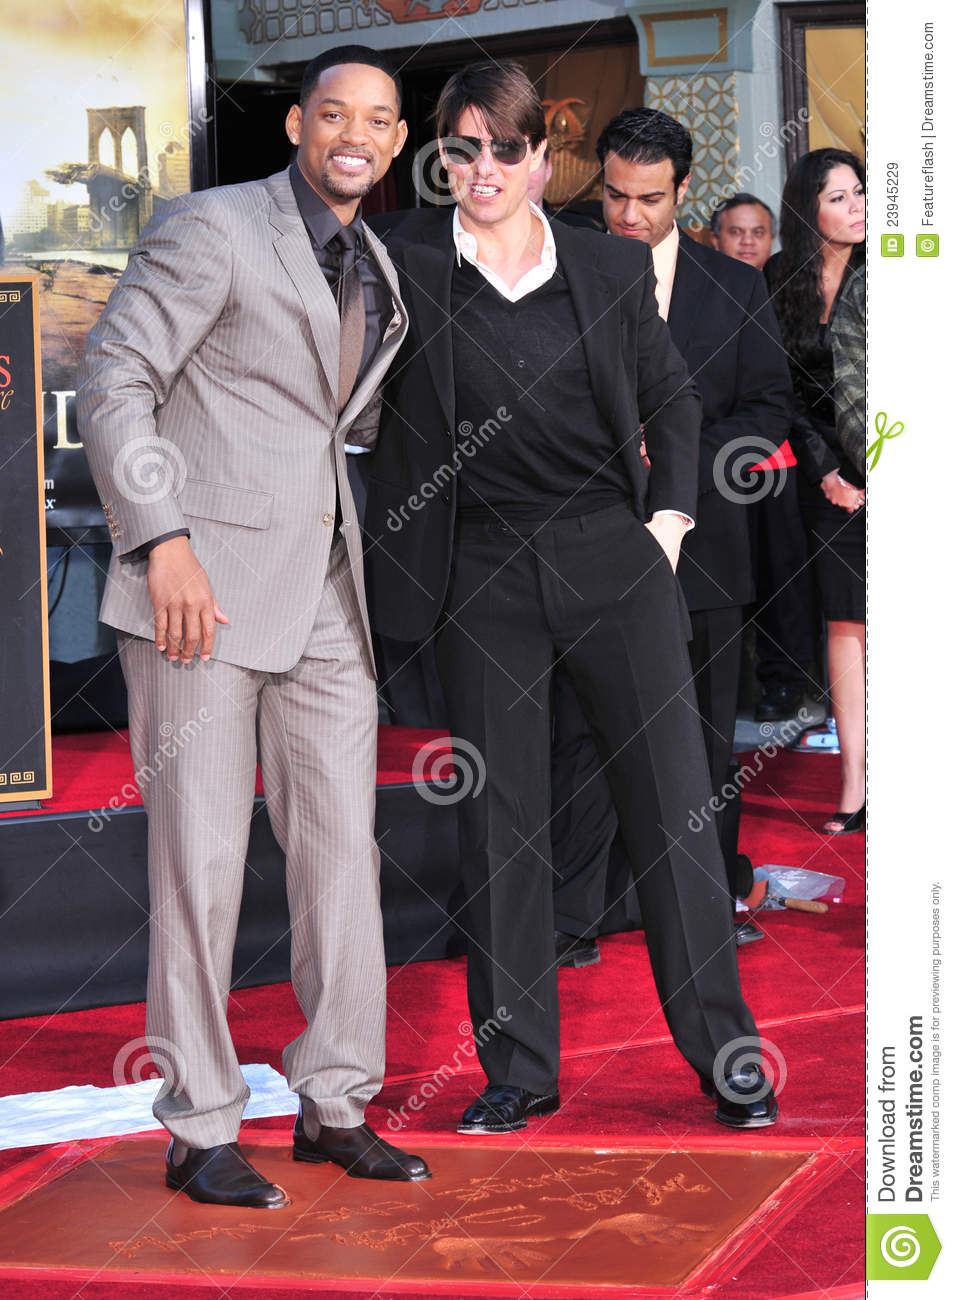 from Mathias will smith and tom cruise gay